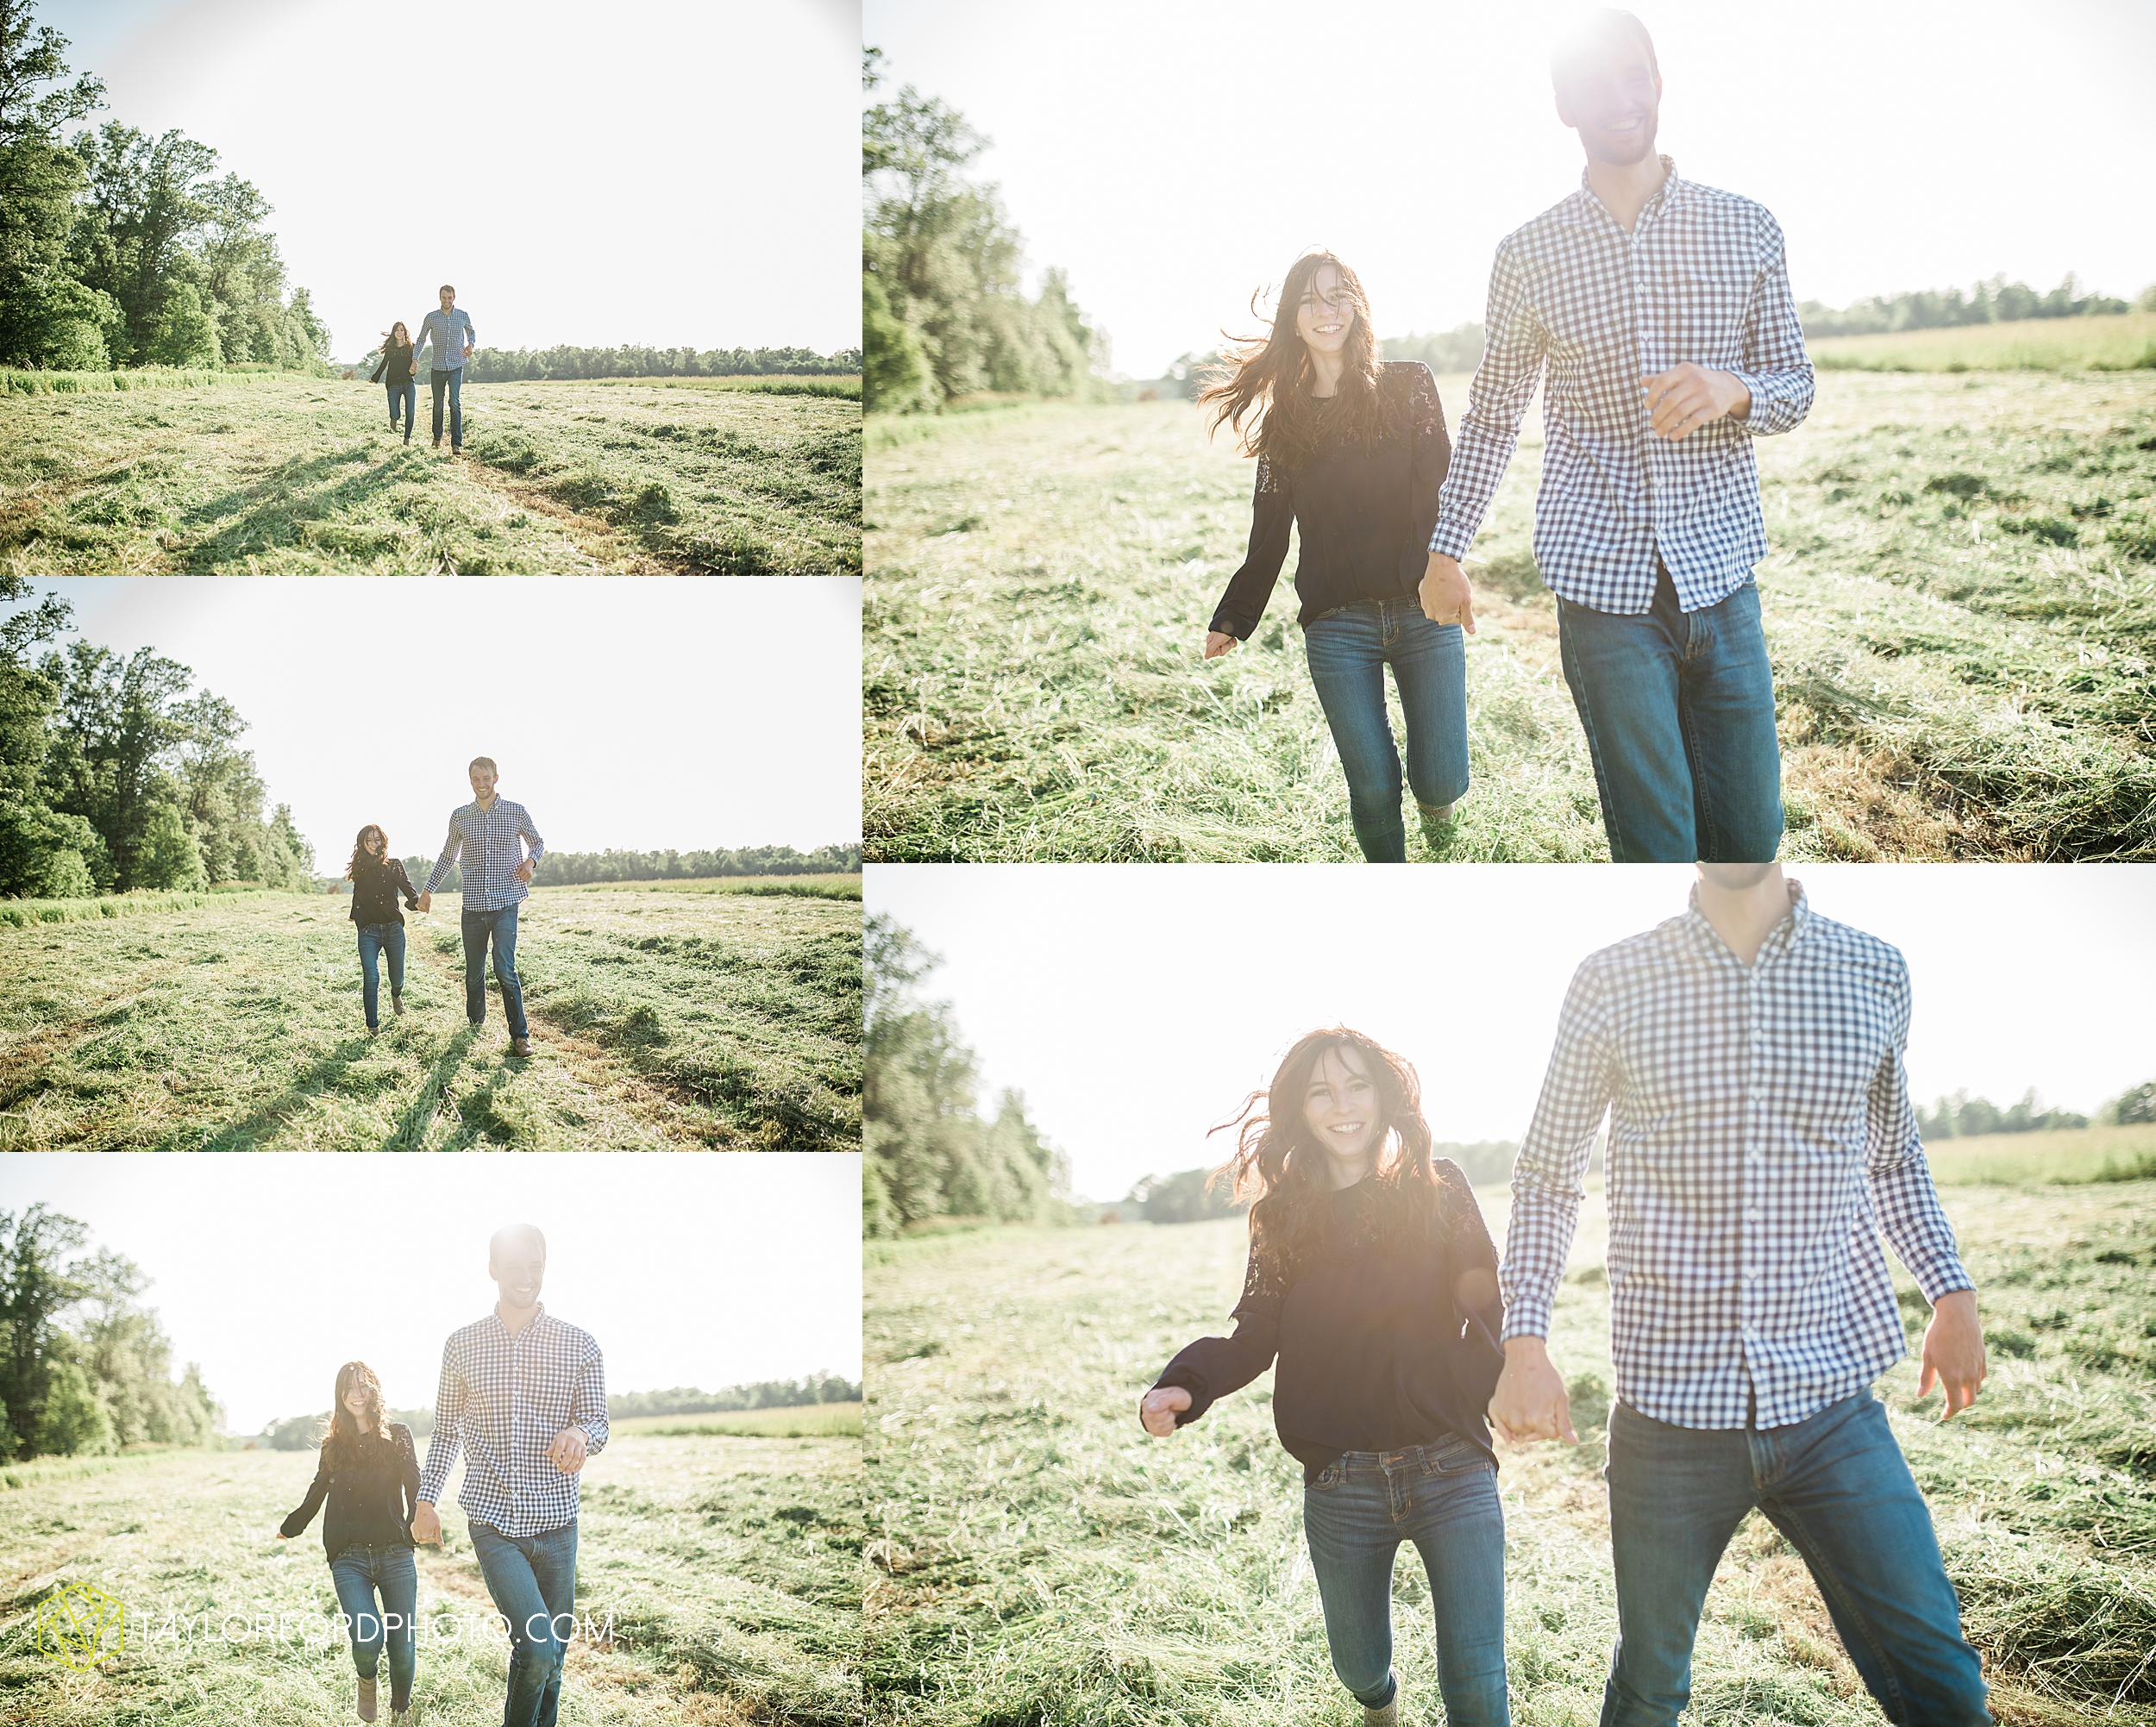 celina-mercer-county-ohio-farm-woods-engagement-photographer-photography-taylor-ford-hirschy-photographer_2994.jpg